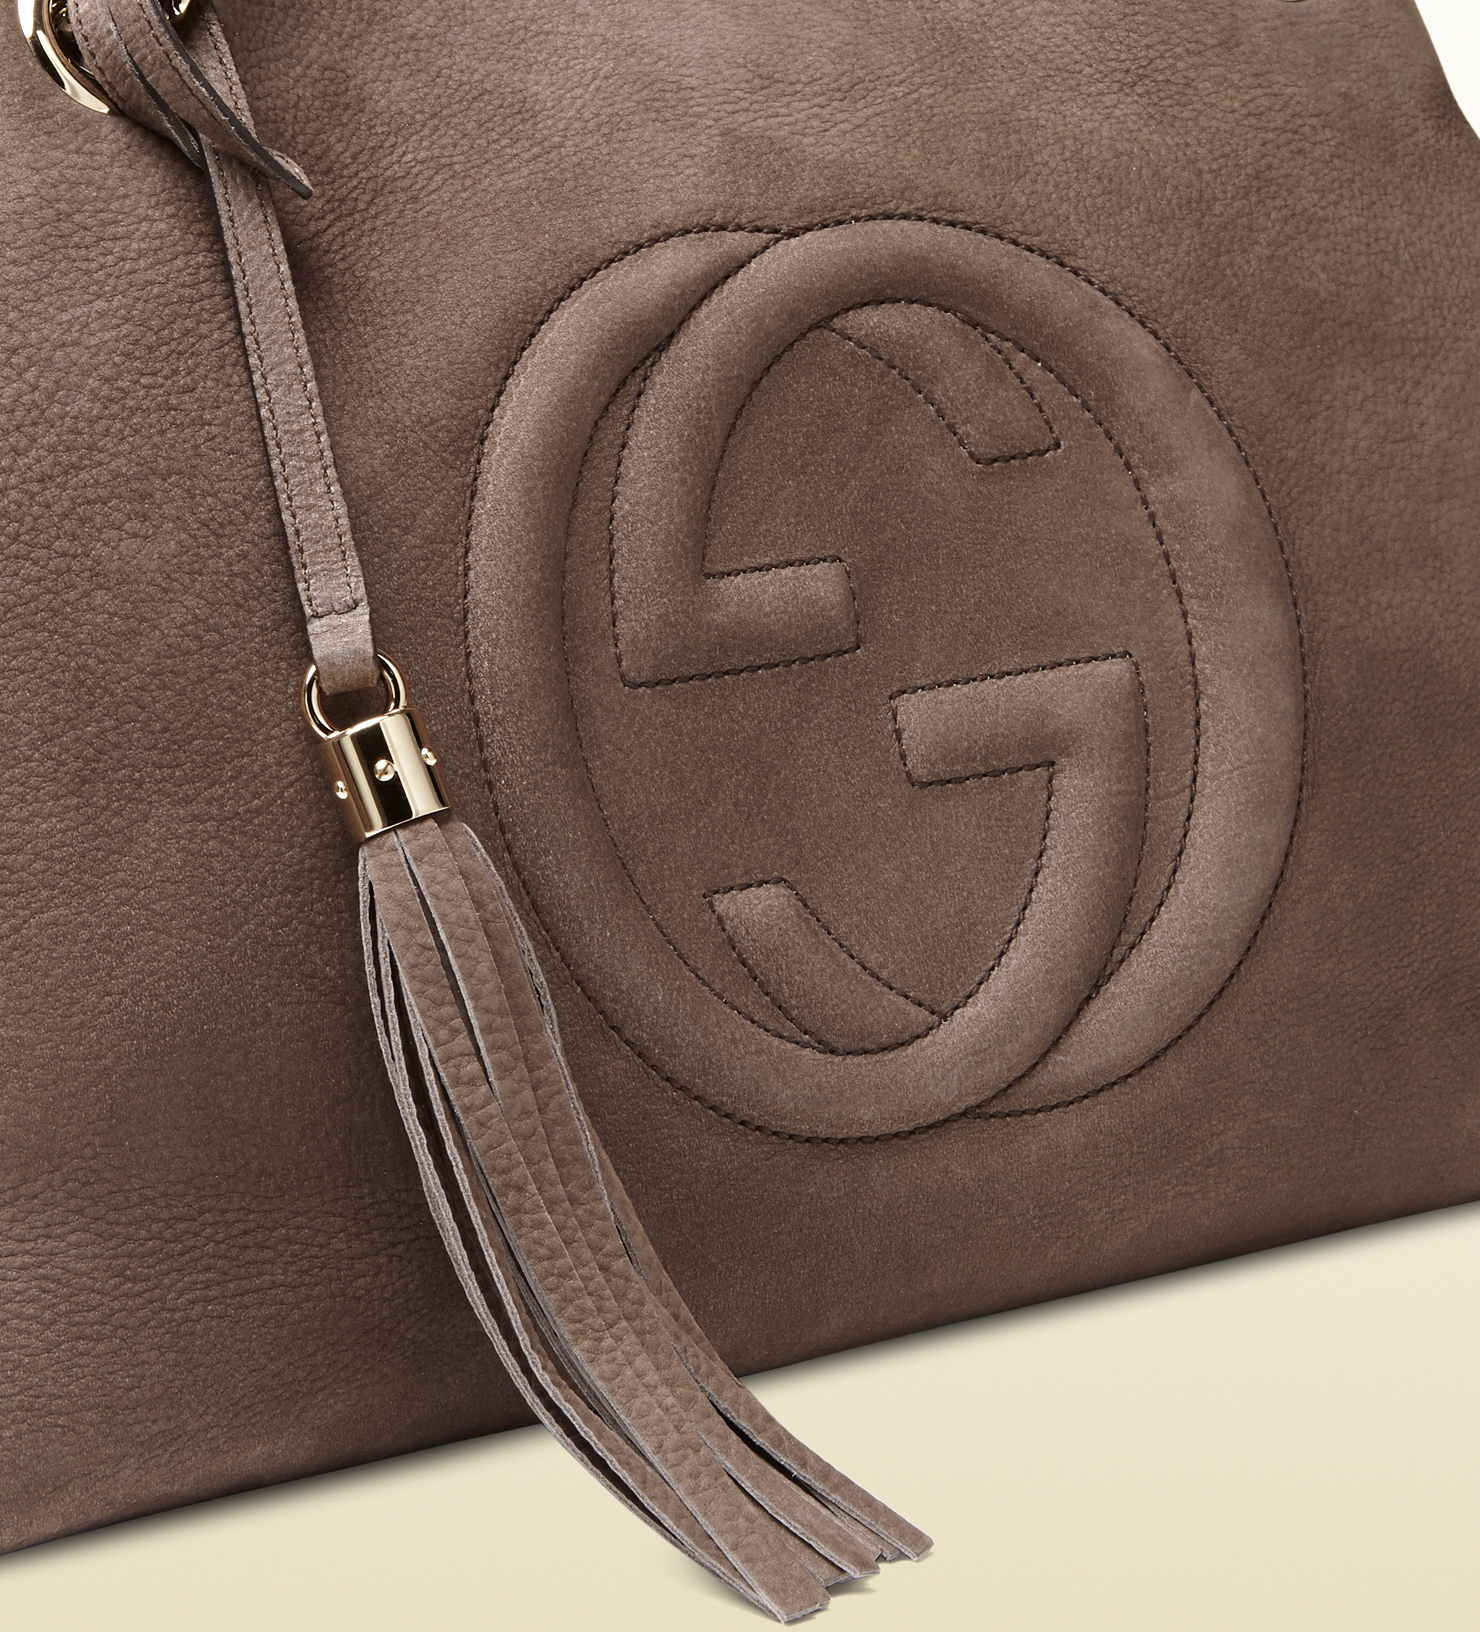 0627680485 Gucci Soho Nubuck Leather Shoulder Bag in Gray - Lyst